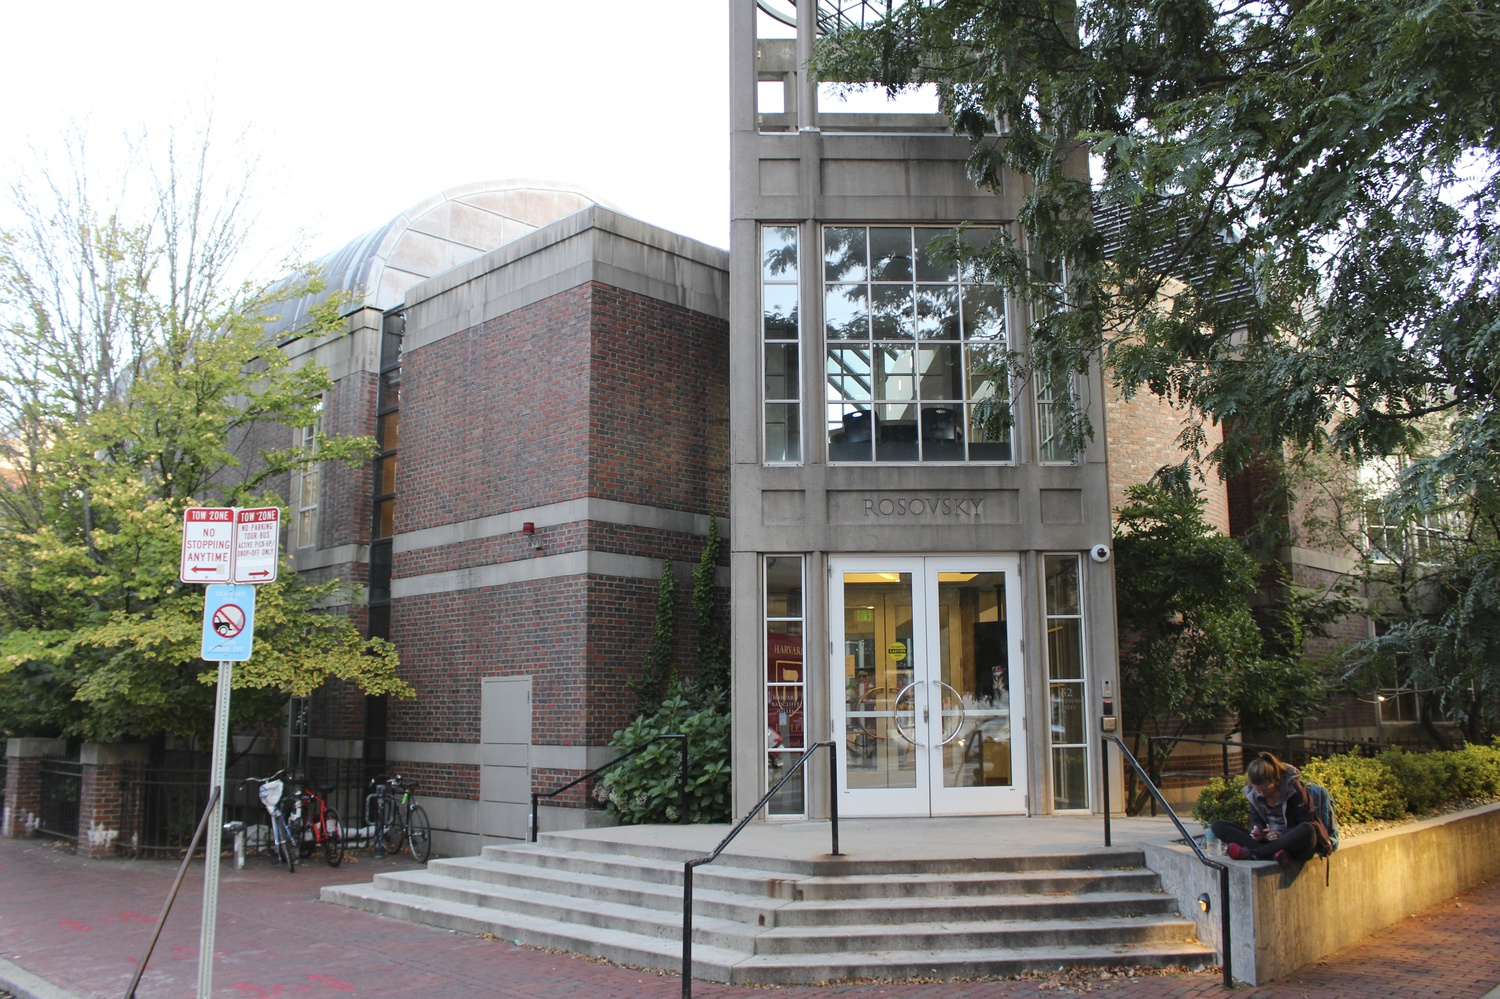 Convicted sex offender Jeffrey E. Epstein facilitated donations to build Rosovsky Hall, the Mount Auburn Street building that houses Harvard Hillel.